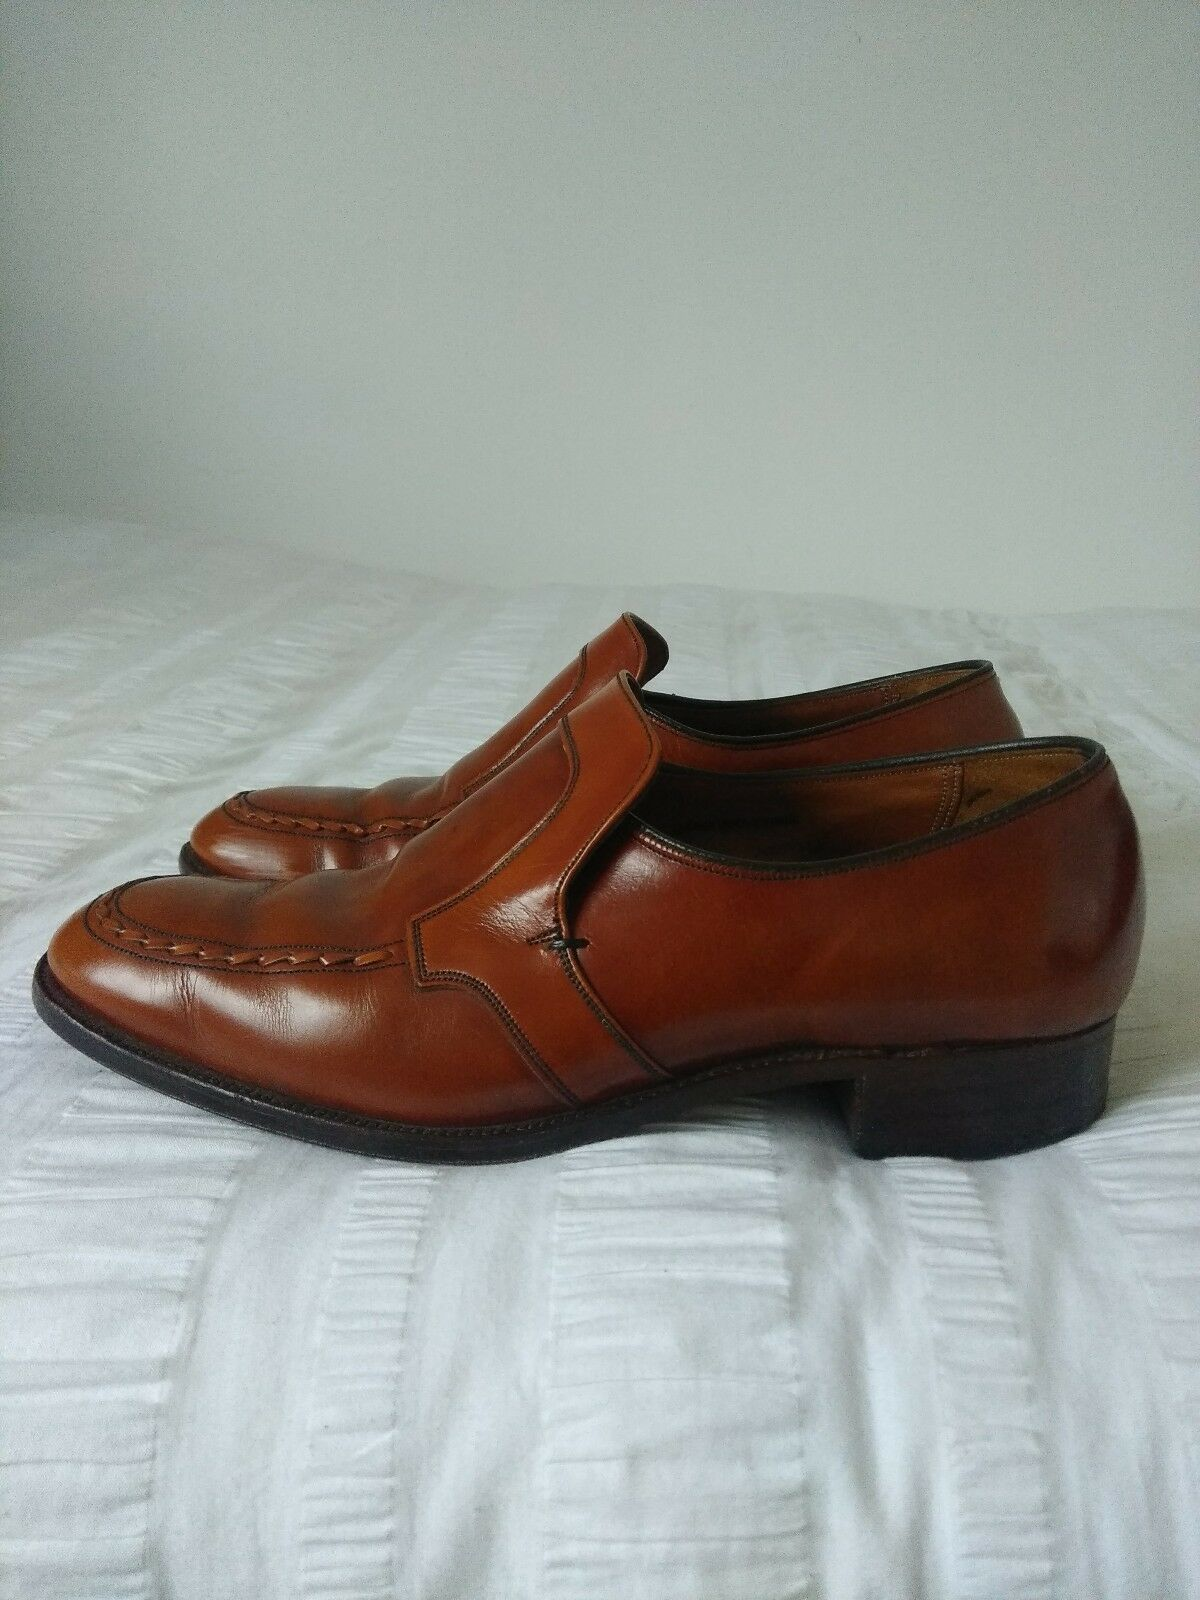 Crockett & Jones 'Hereford' Men's Chestnut Brown Leather shoes, Size UK8.5E